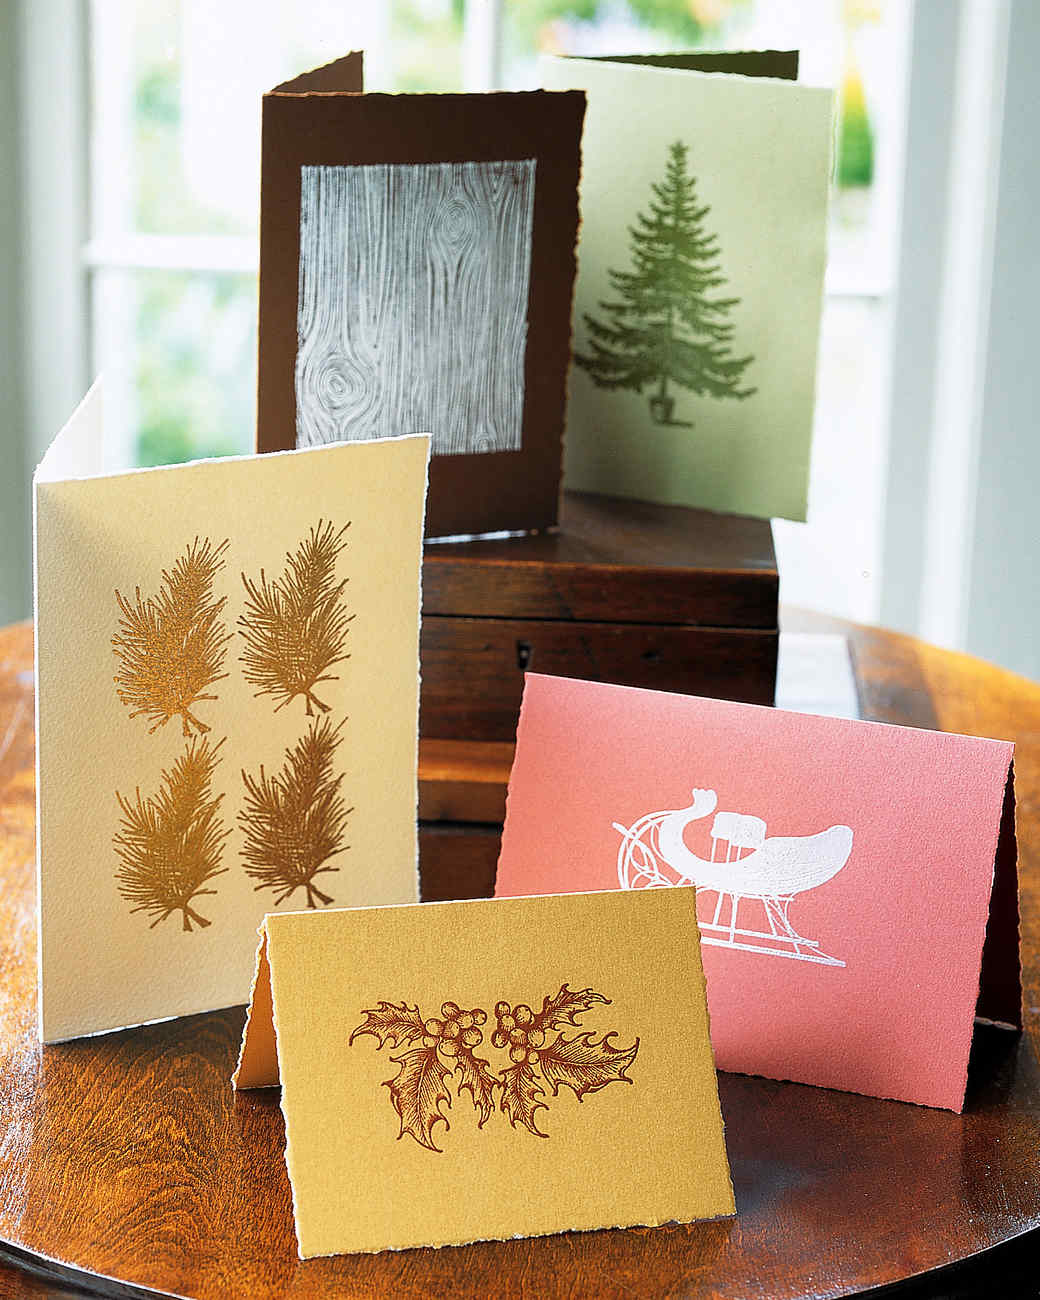 Deckle-Edged Cards